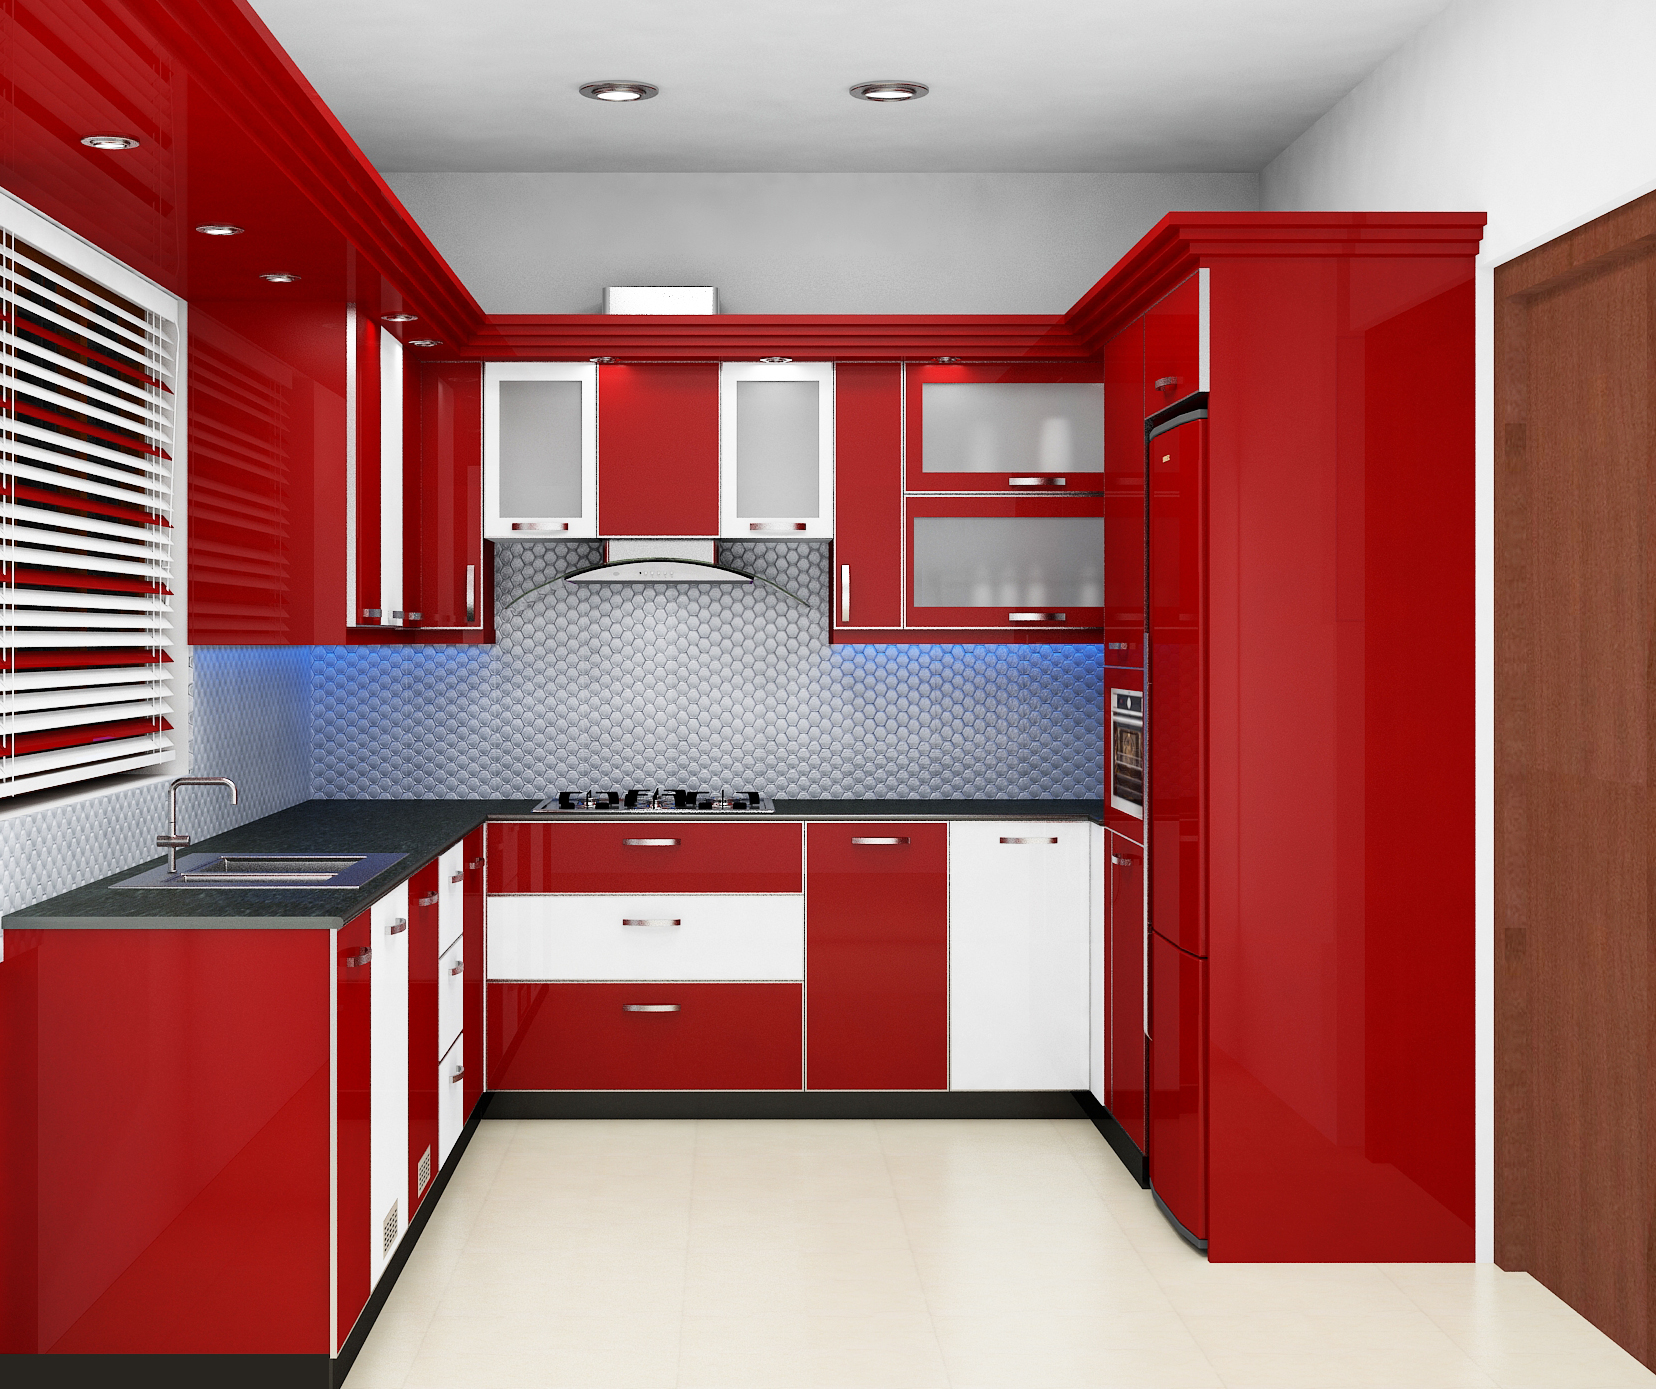 Exemplary and amazing modular kitchen home interior design for Amazing interior house designs